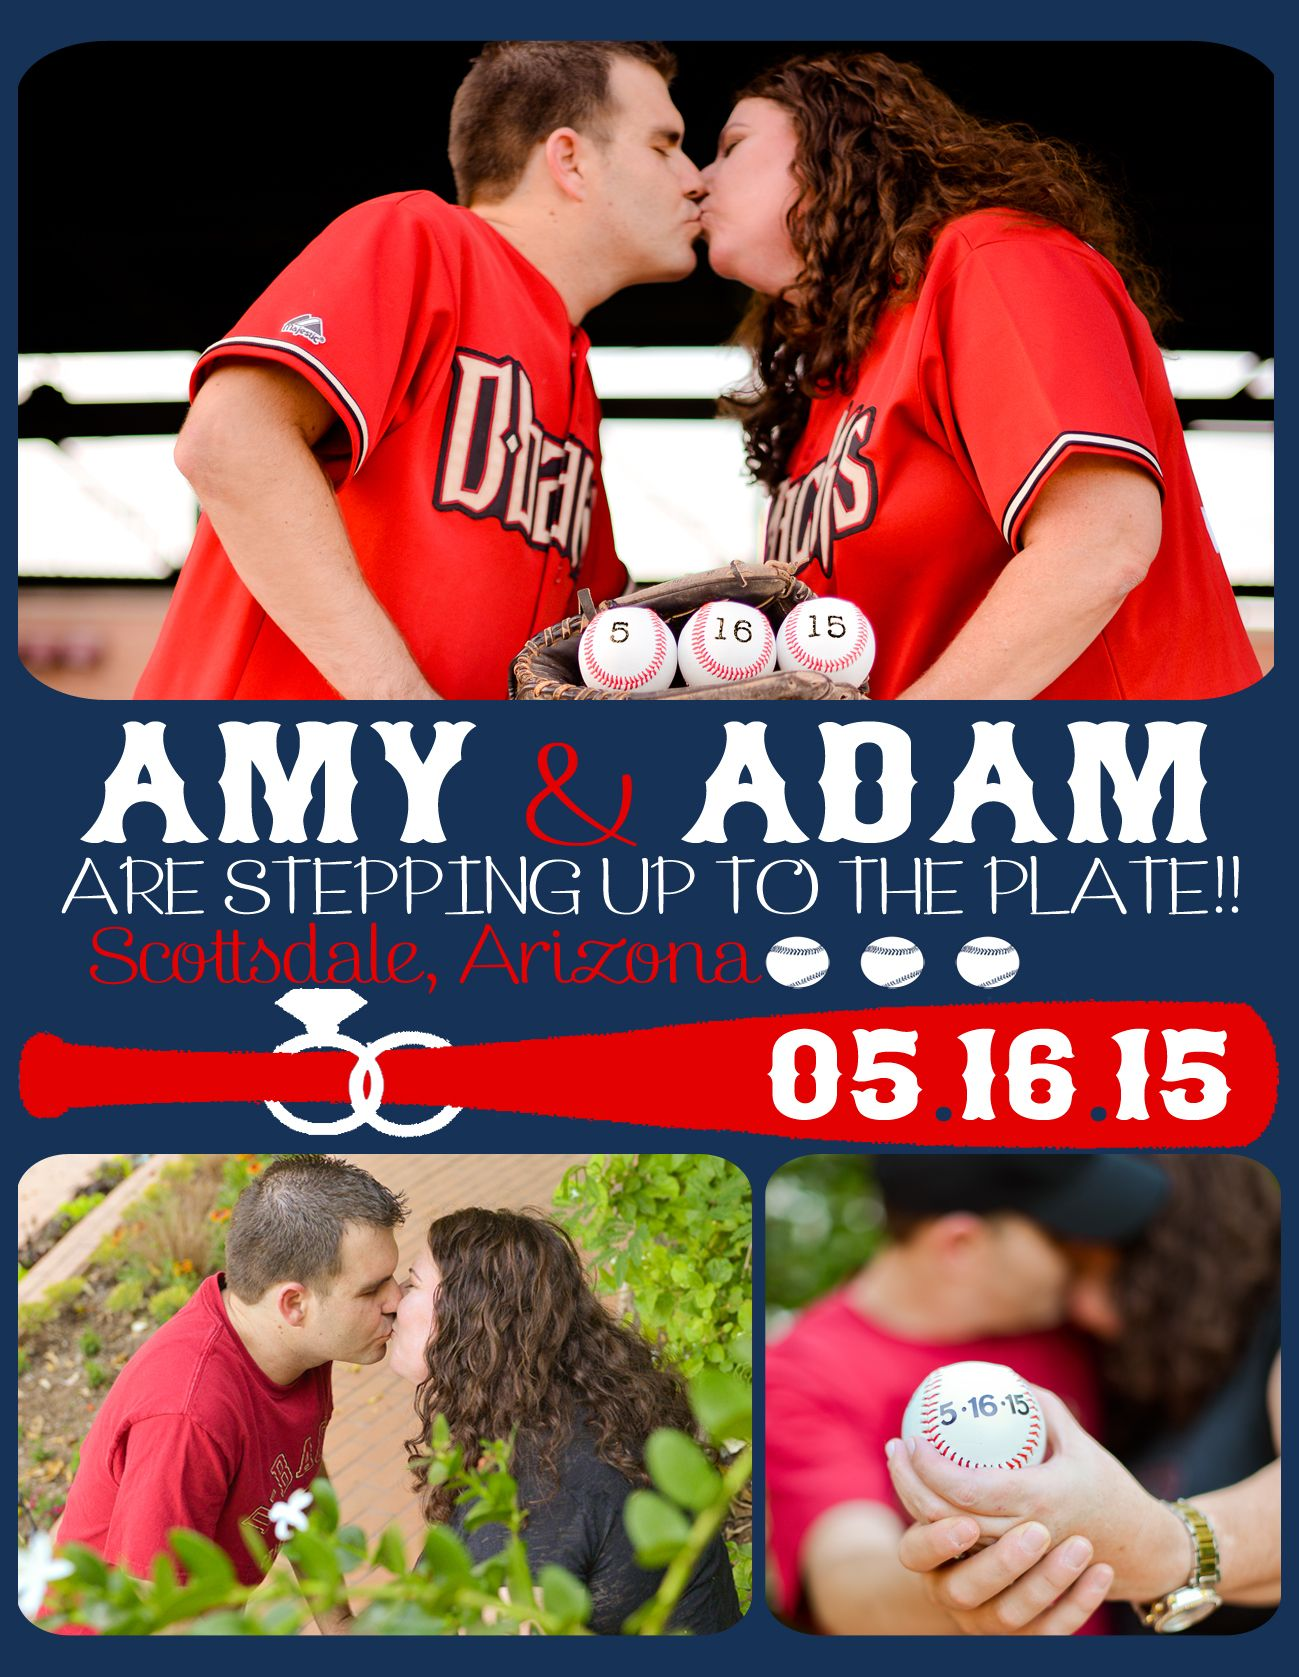 baseball theme save the date wedding wedding save the date